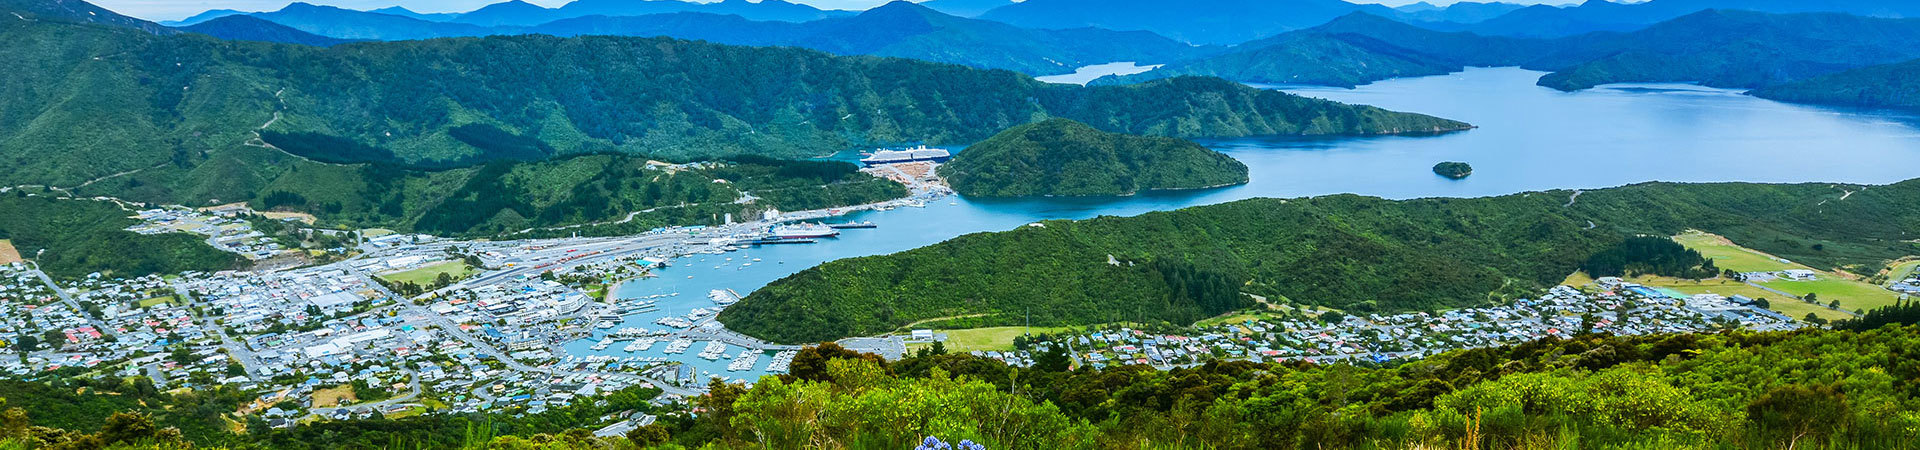 Picton harbour at the top of New Zealand's South Island